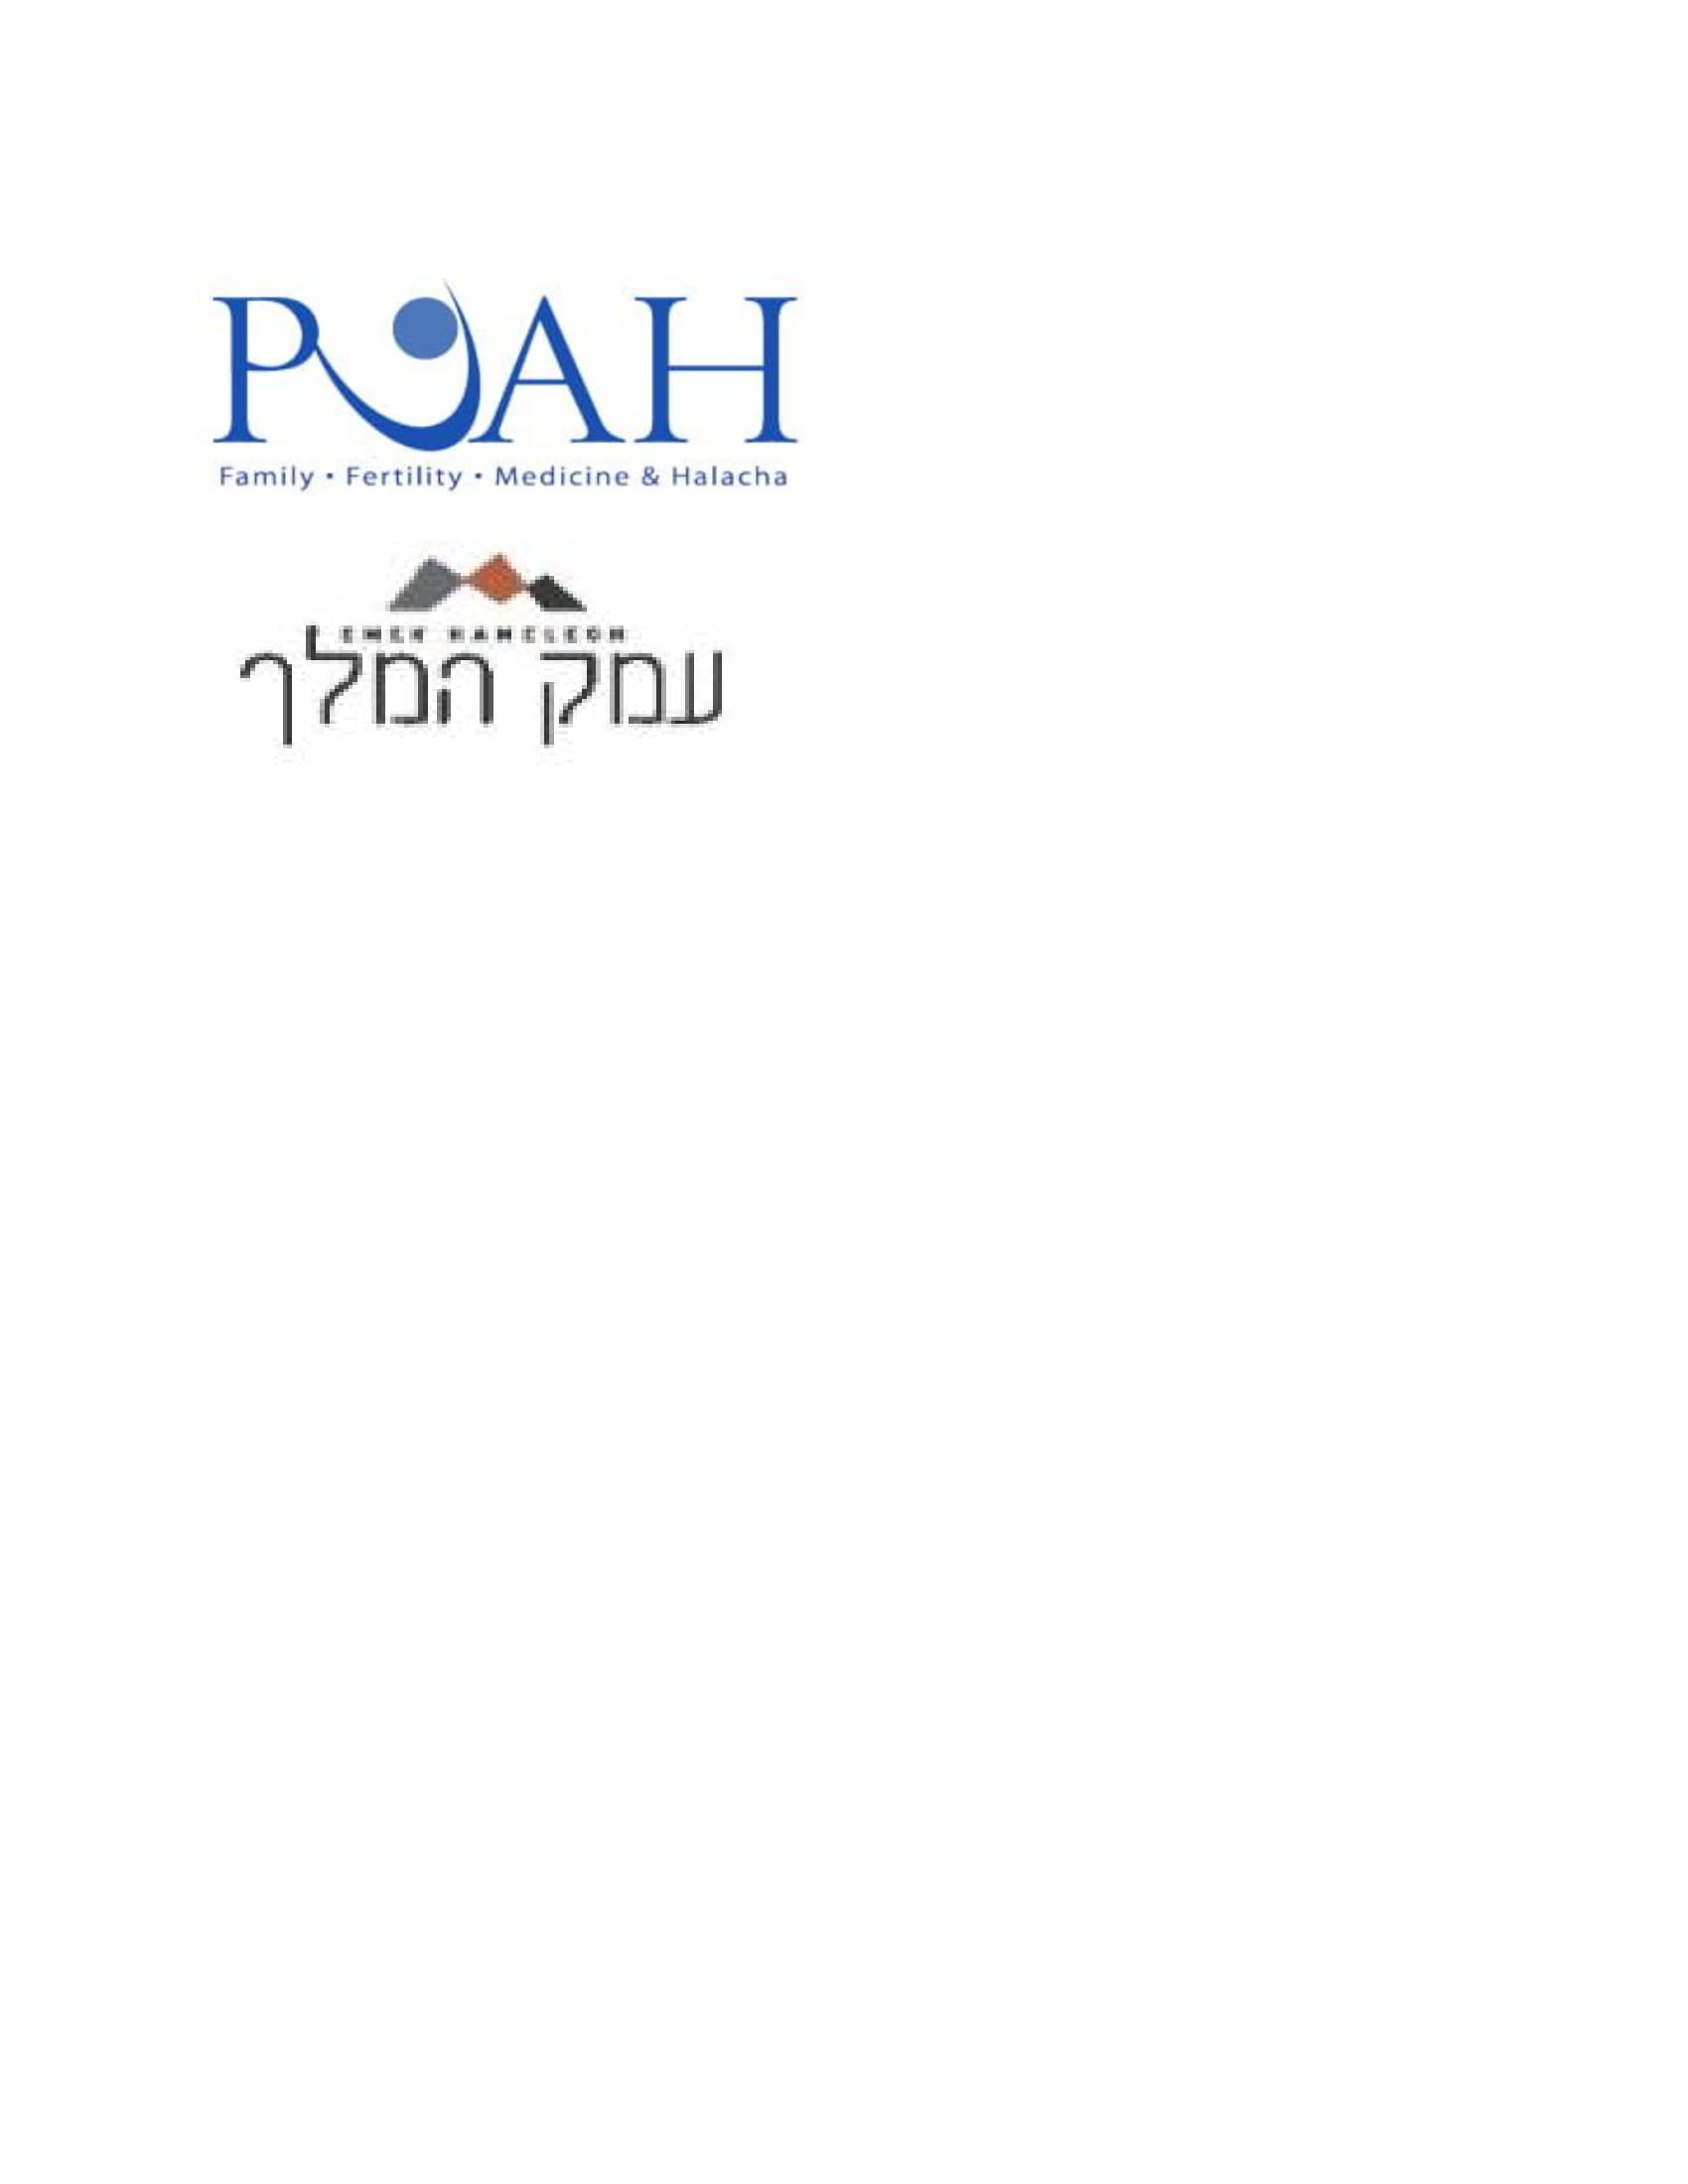 PUAH at Aish Kodesh